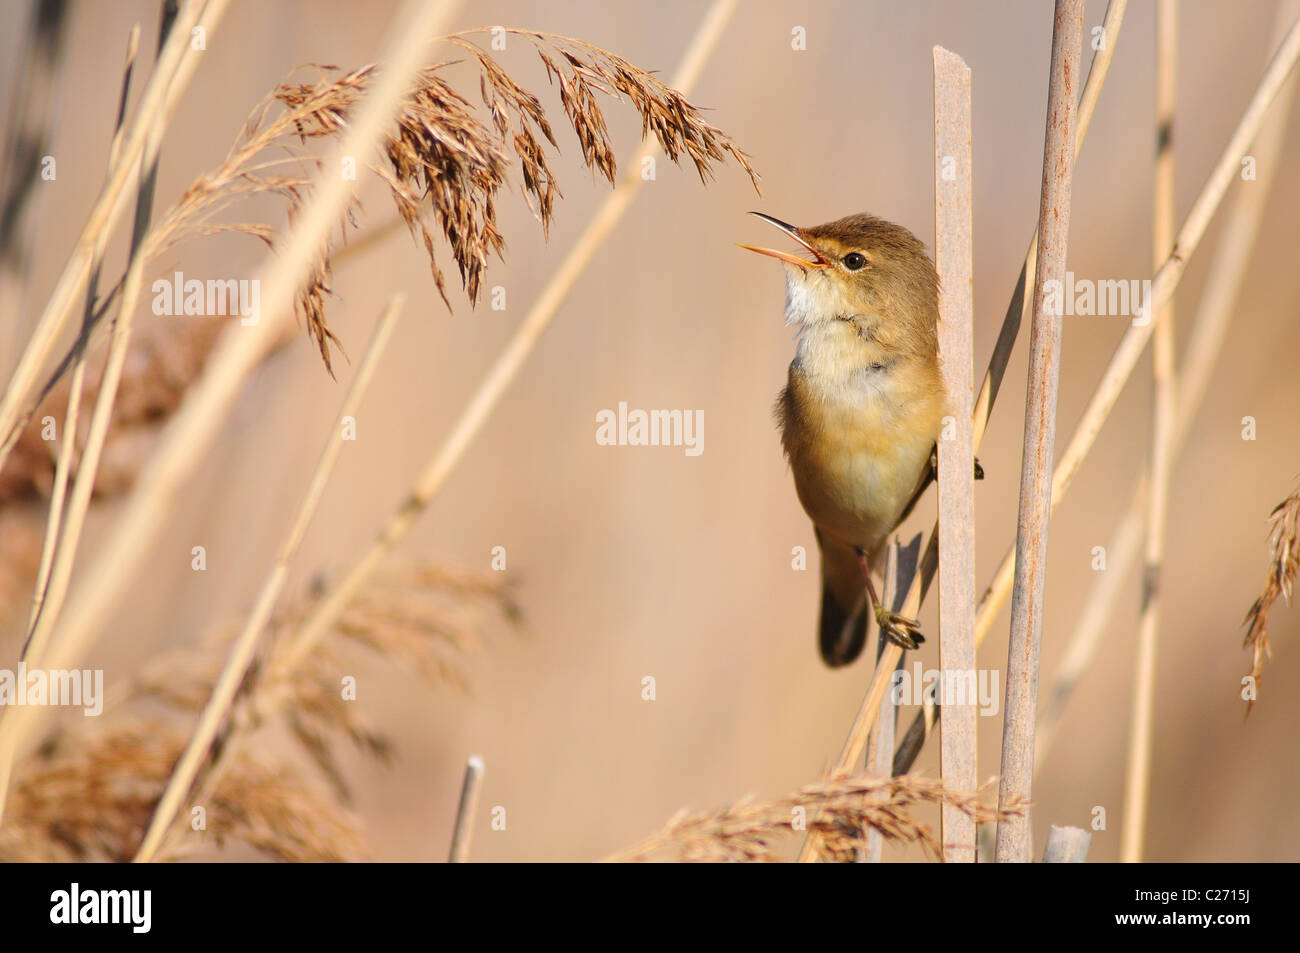 A reed warbler singing in the reeds UK - Stock Image